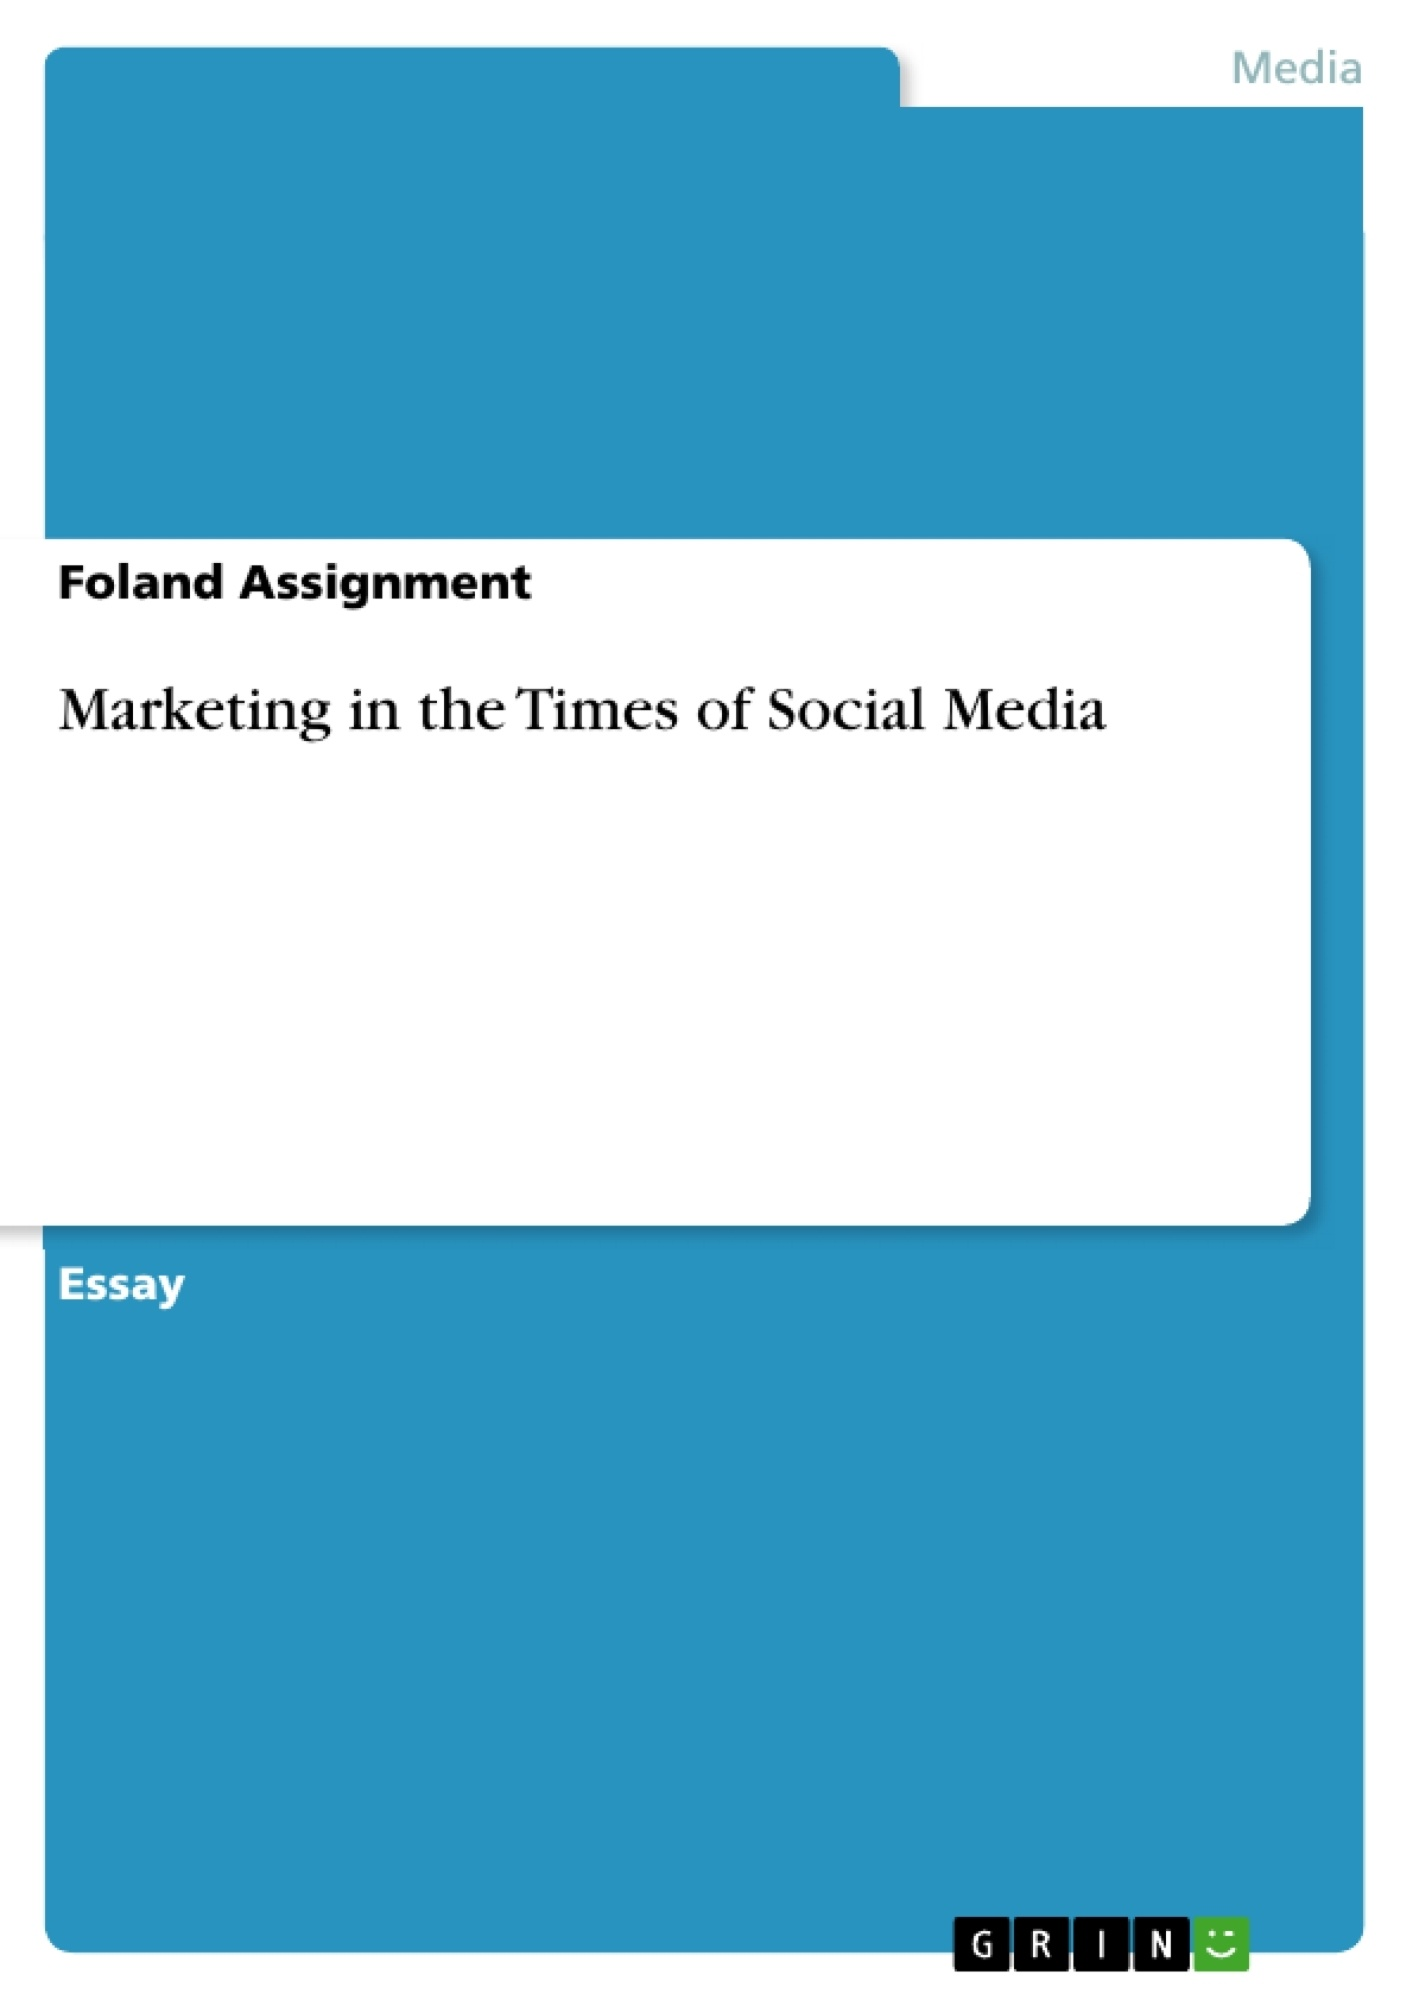 Title: Marketing in the Times of Social Media